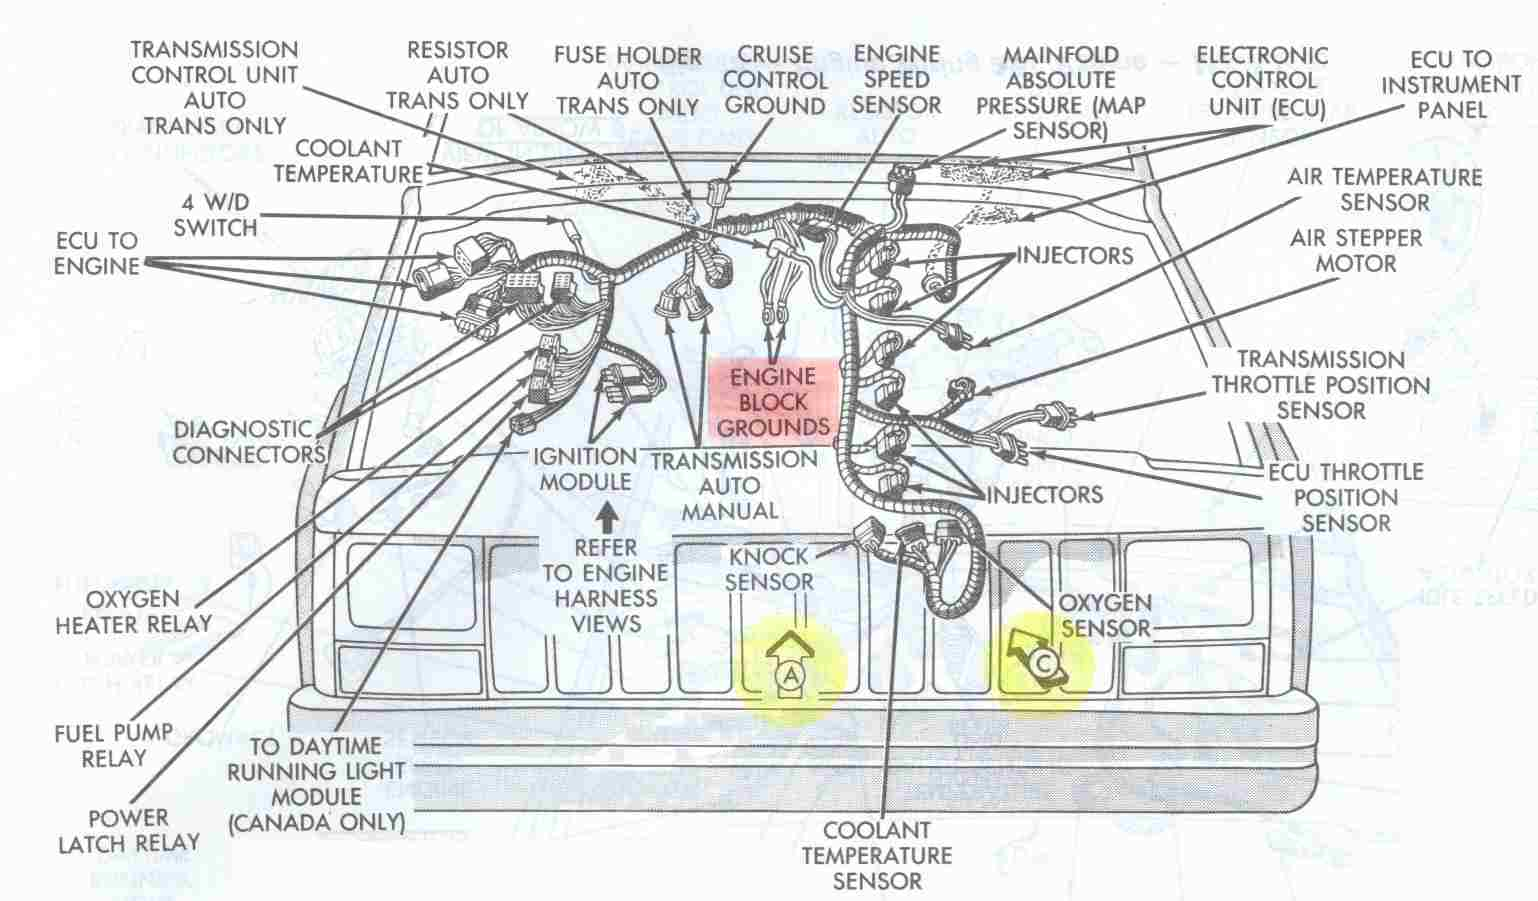 jeep 4 0l engine diagram wiring diagramjeep 4 0 wiring diagram wiring diagram experts1999 4 0 jeep engine diagram wiring diagram experts